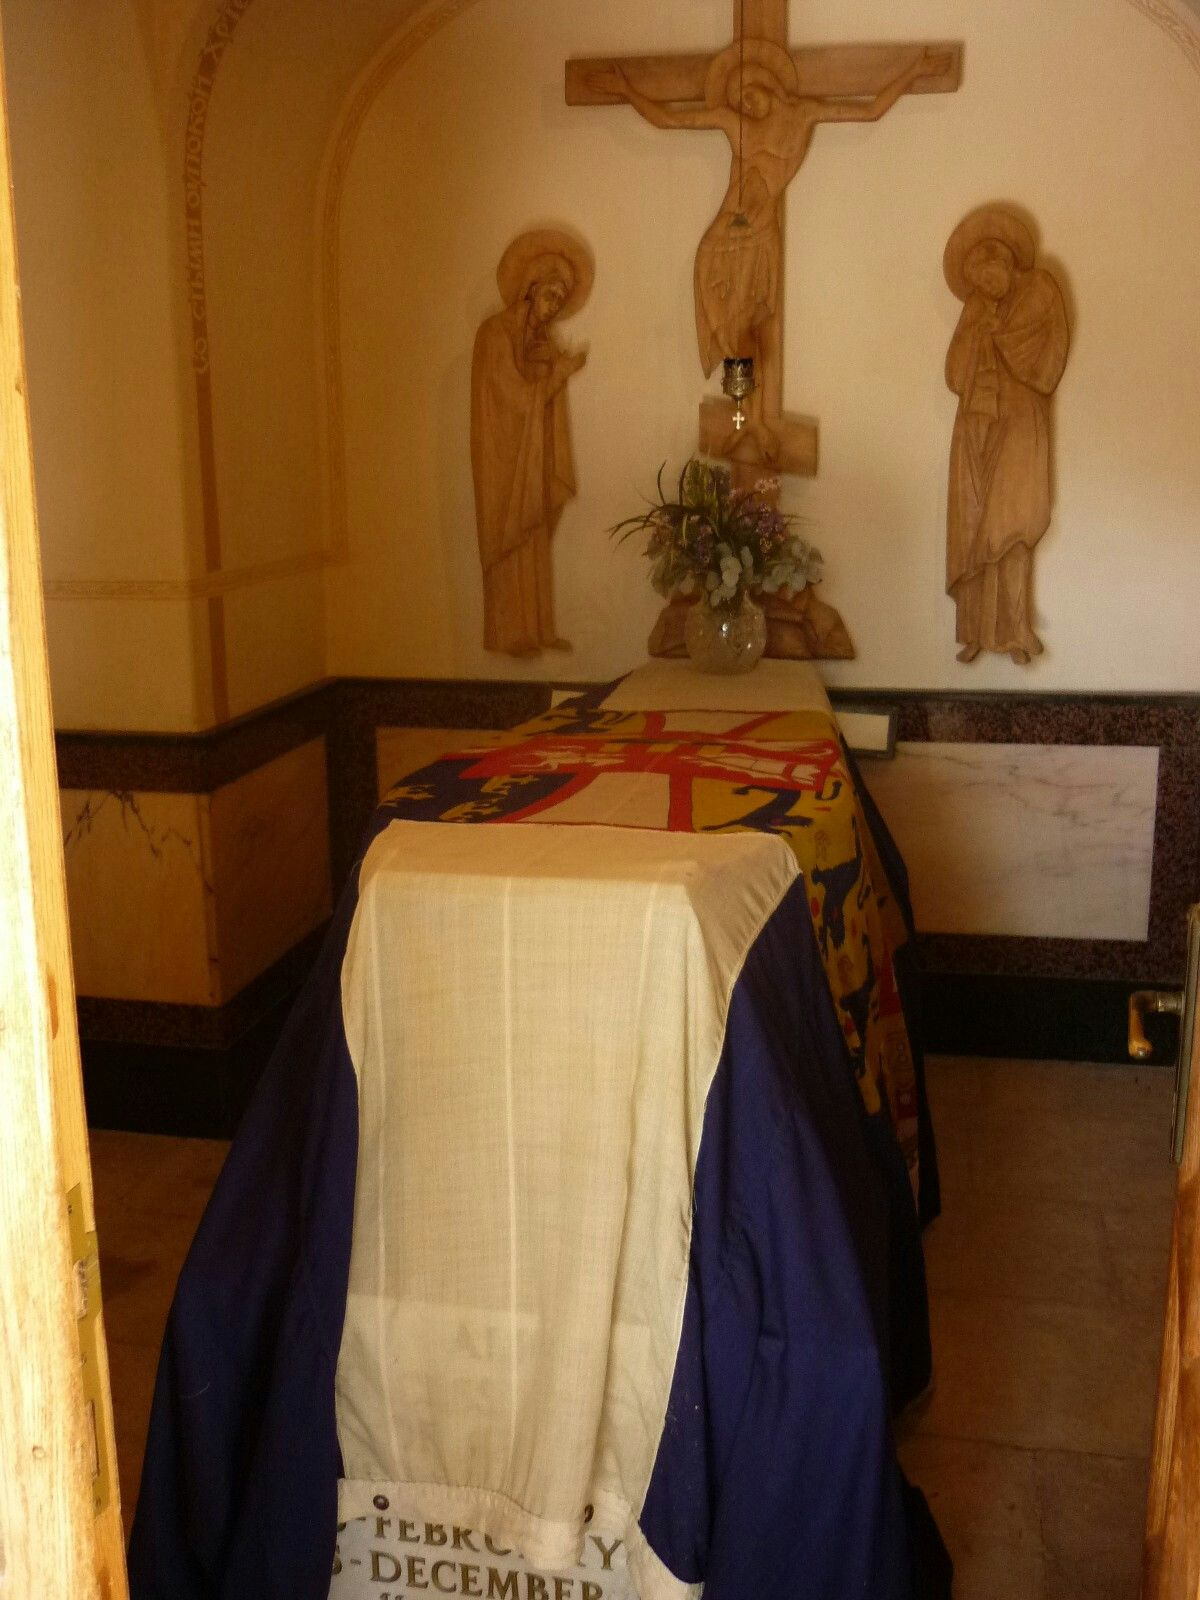 The Coffin And Final Resting Place Of Princess Alice Of Battenburg At The Crypt Below The Conven Princess Alice Of Battenberg Princess Alice Princess Elizabeth